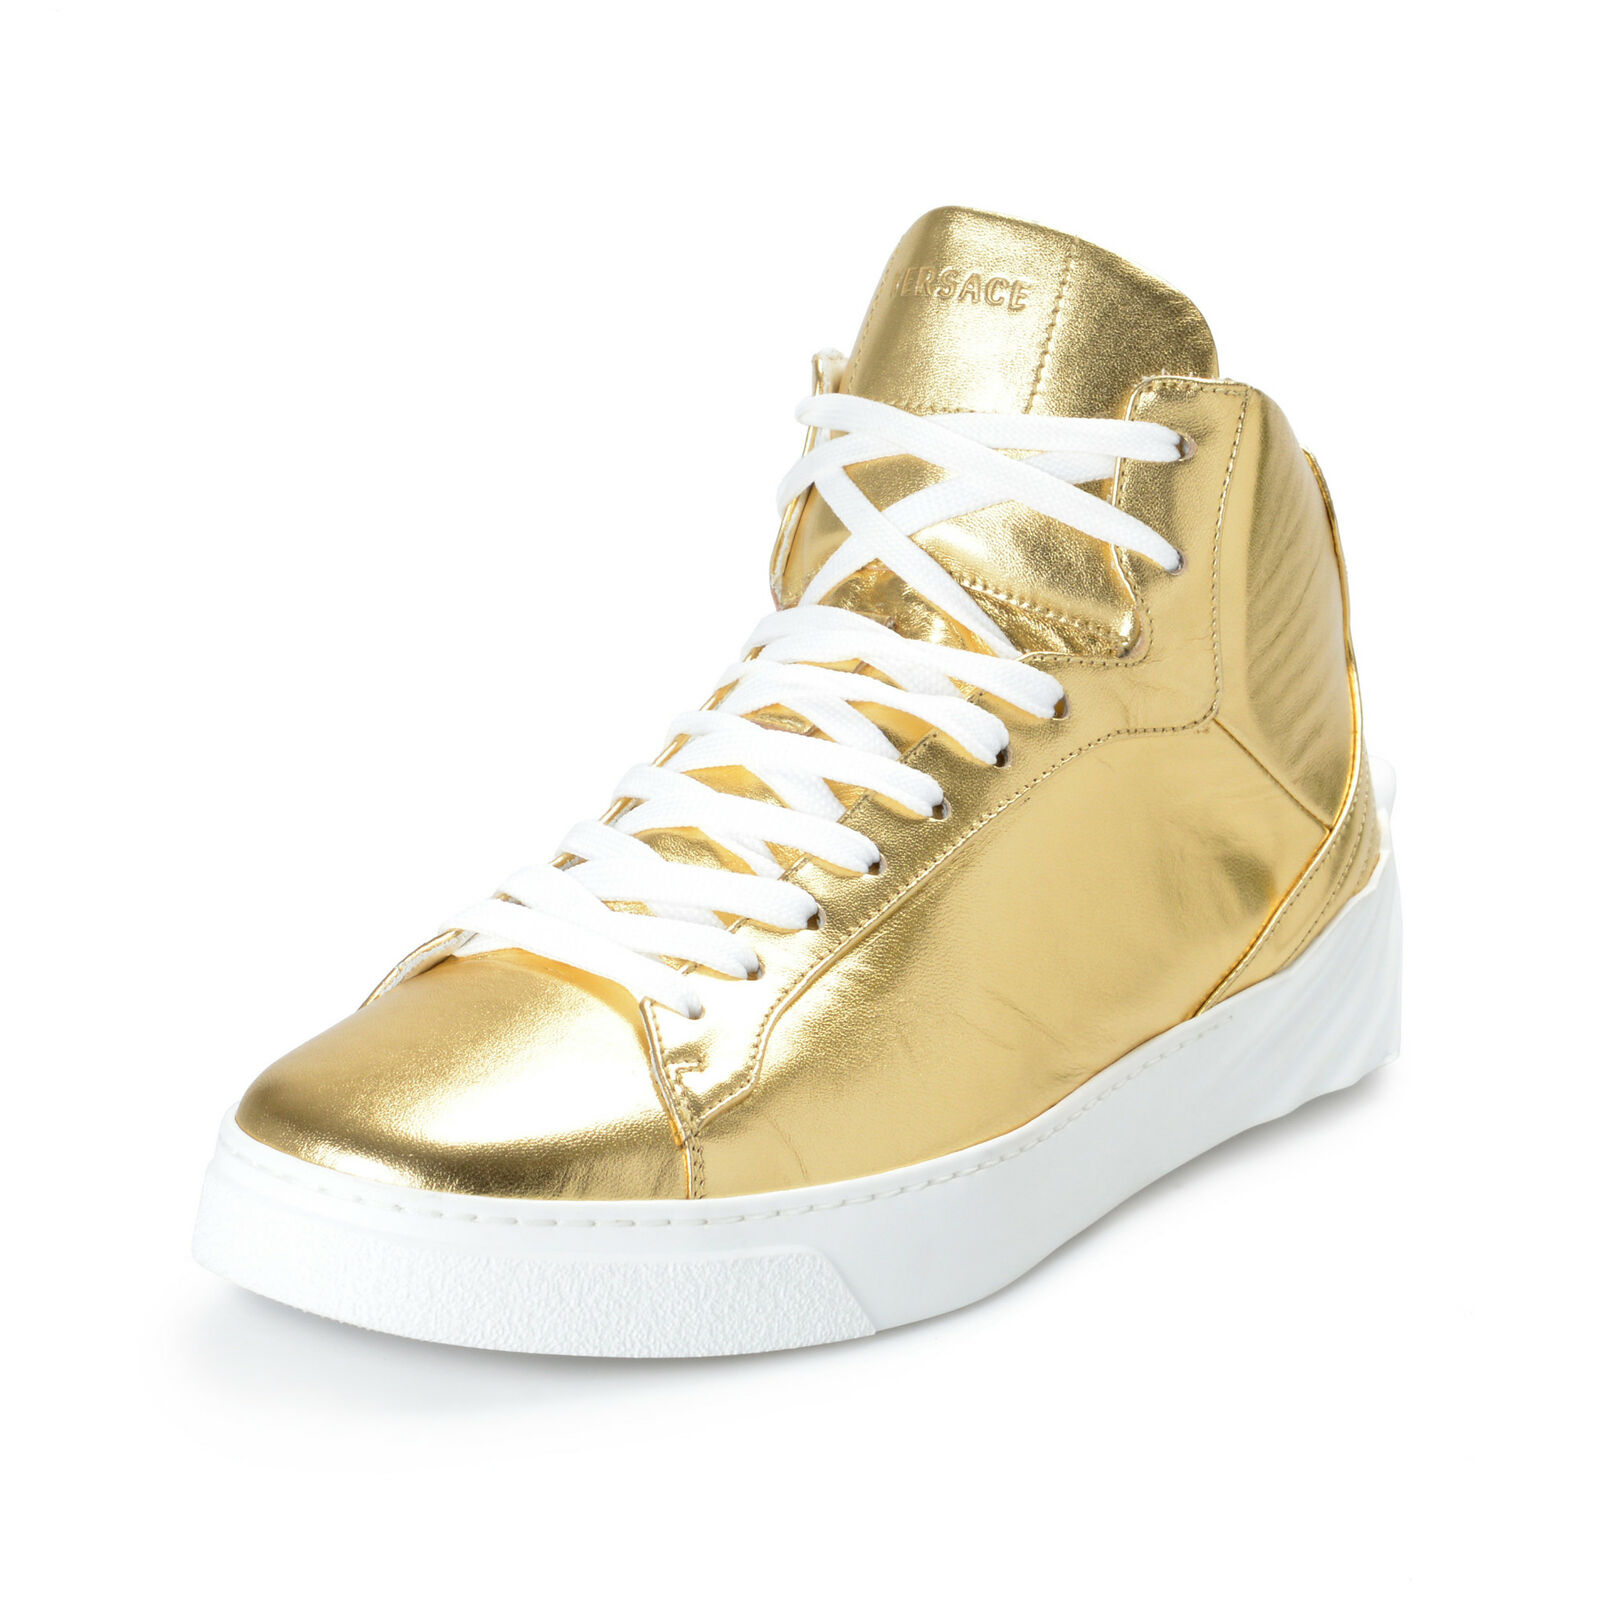 Versace Men's oro Leather Medusa Hi Top Fashion scarpe da ginnastica scarpe Sz 7 8 8.5 9.5